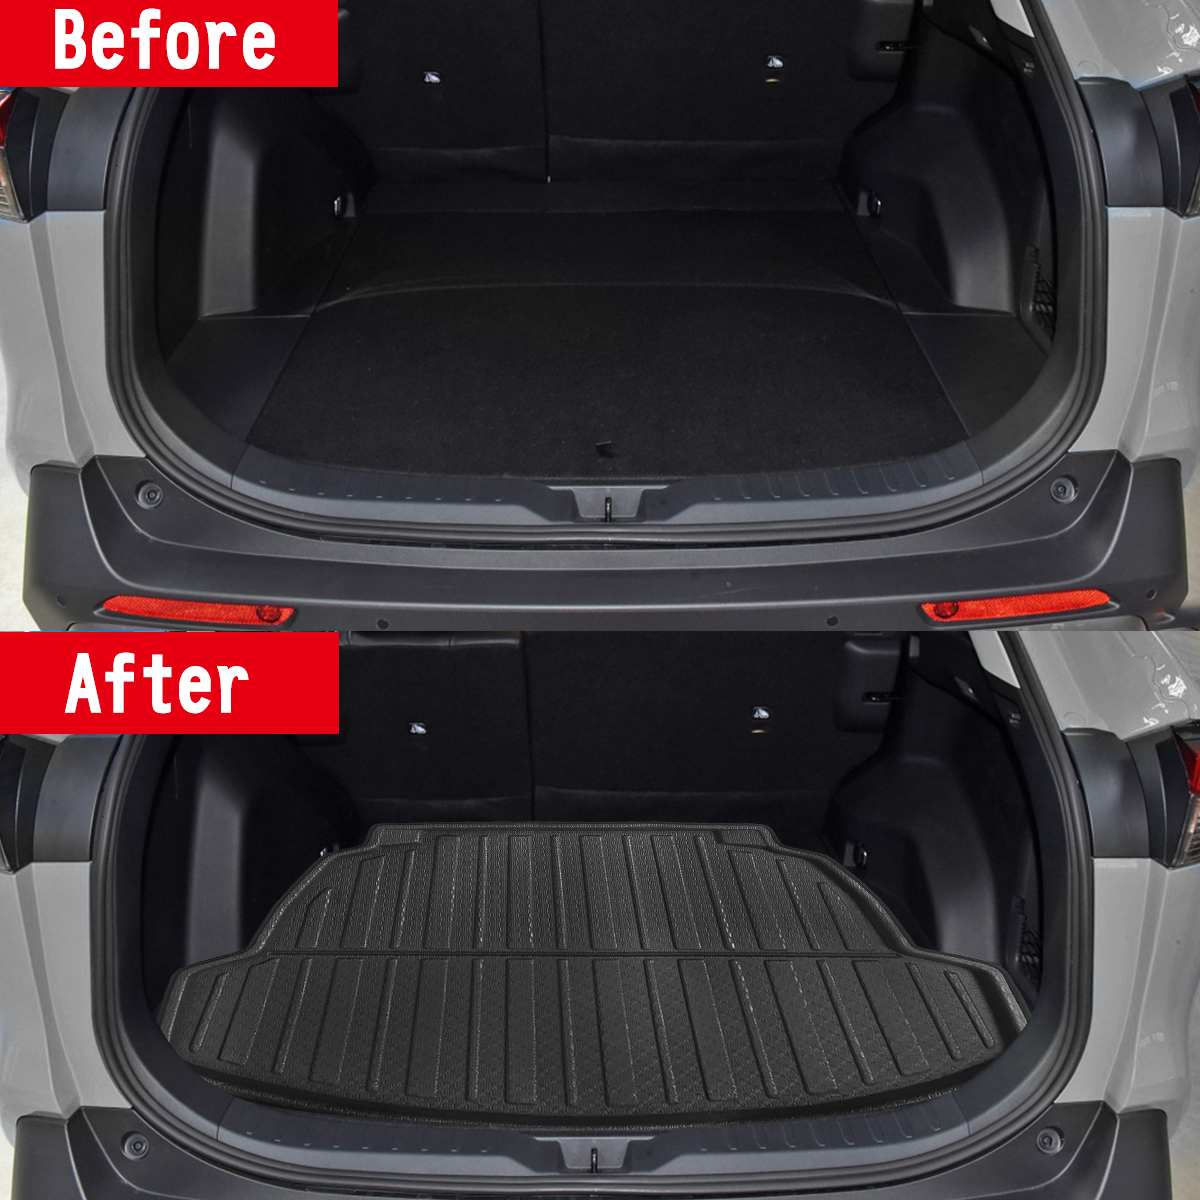 Car Cargo Liner Boot Tray Rear Trunk Cover Matt Mat Floor Carpet Kick Pad For Toyota For Carola Corolla Sedan models 2019